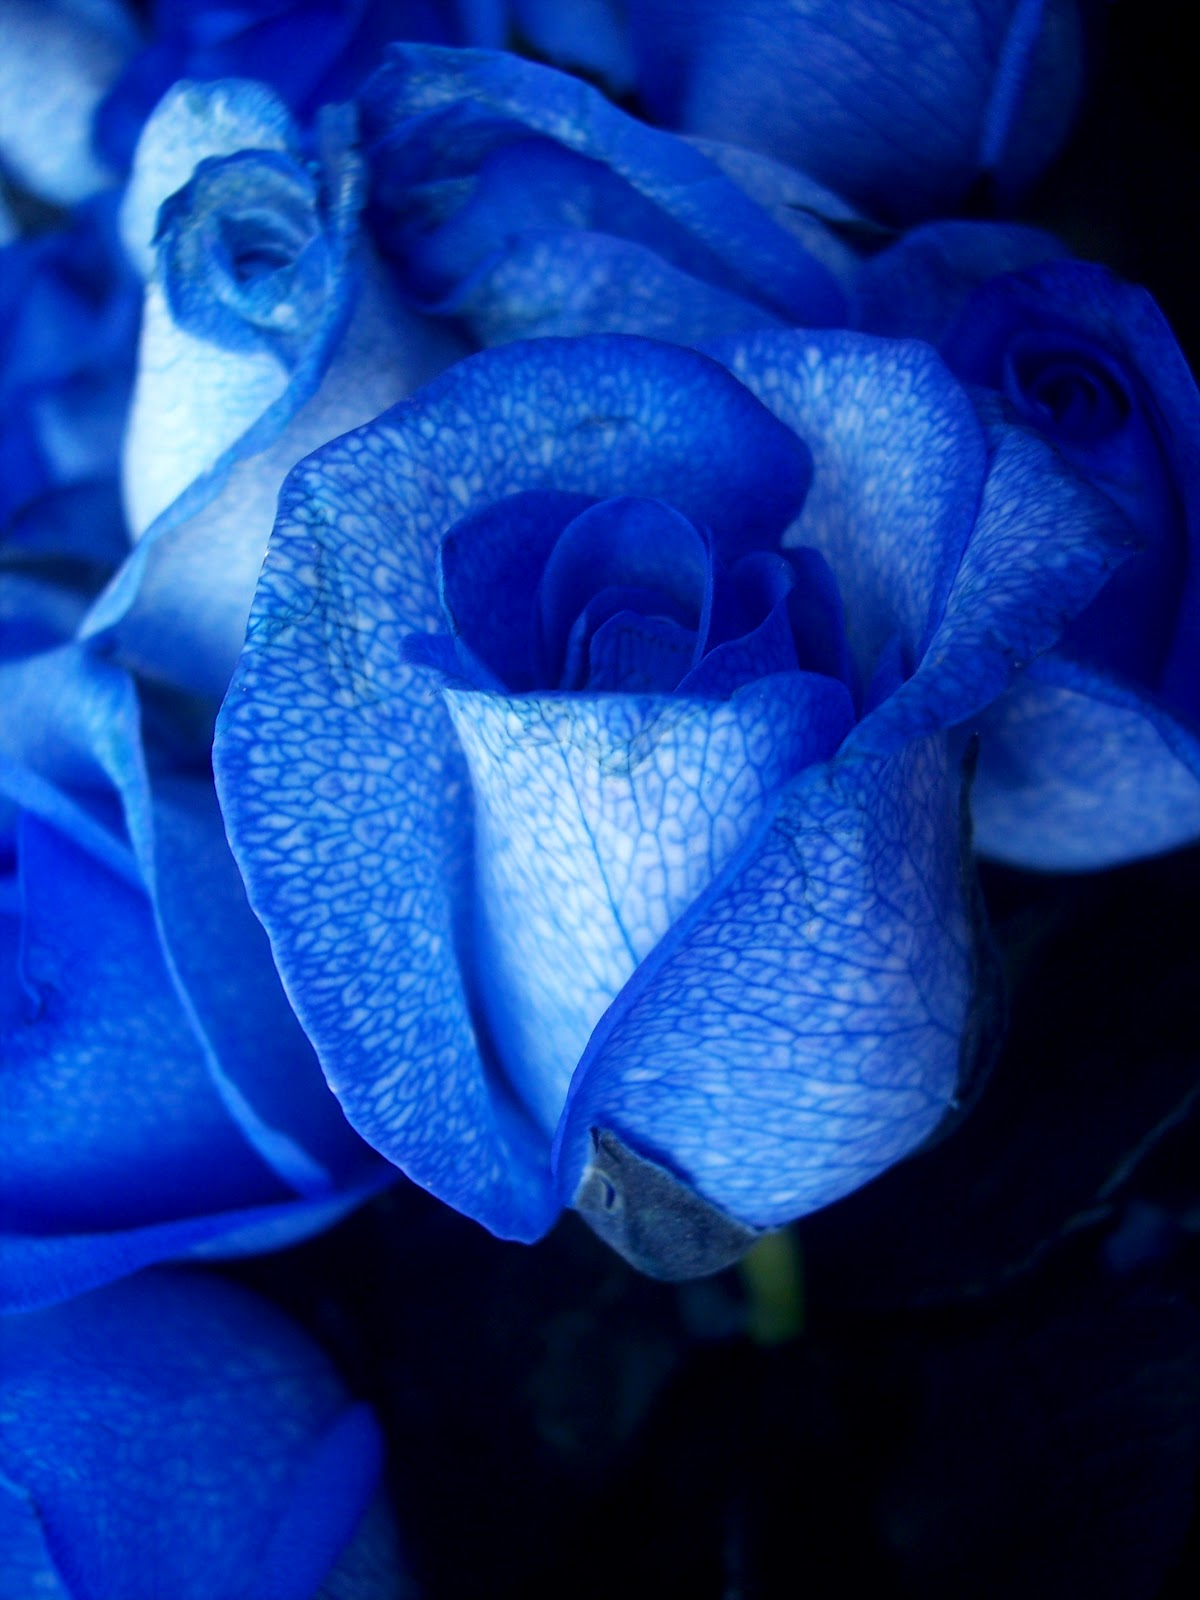 Blue roses blue roses blue flowers blue roses pictures charm and attraction at first sight also highlight the meaning of the blue rose lilac and lavender have been interconnected with each other as a symbol of izmirmasajfo